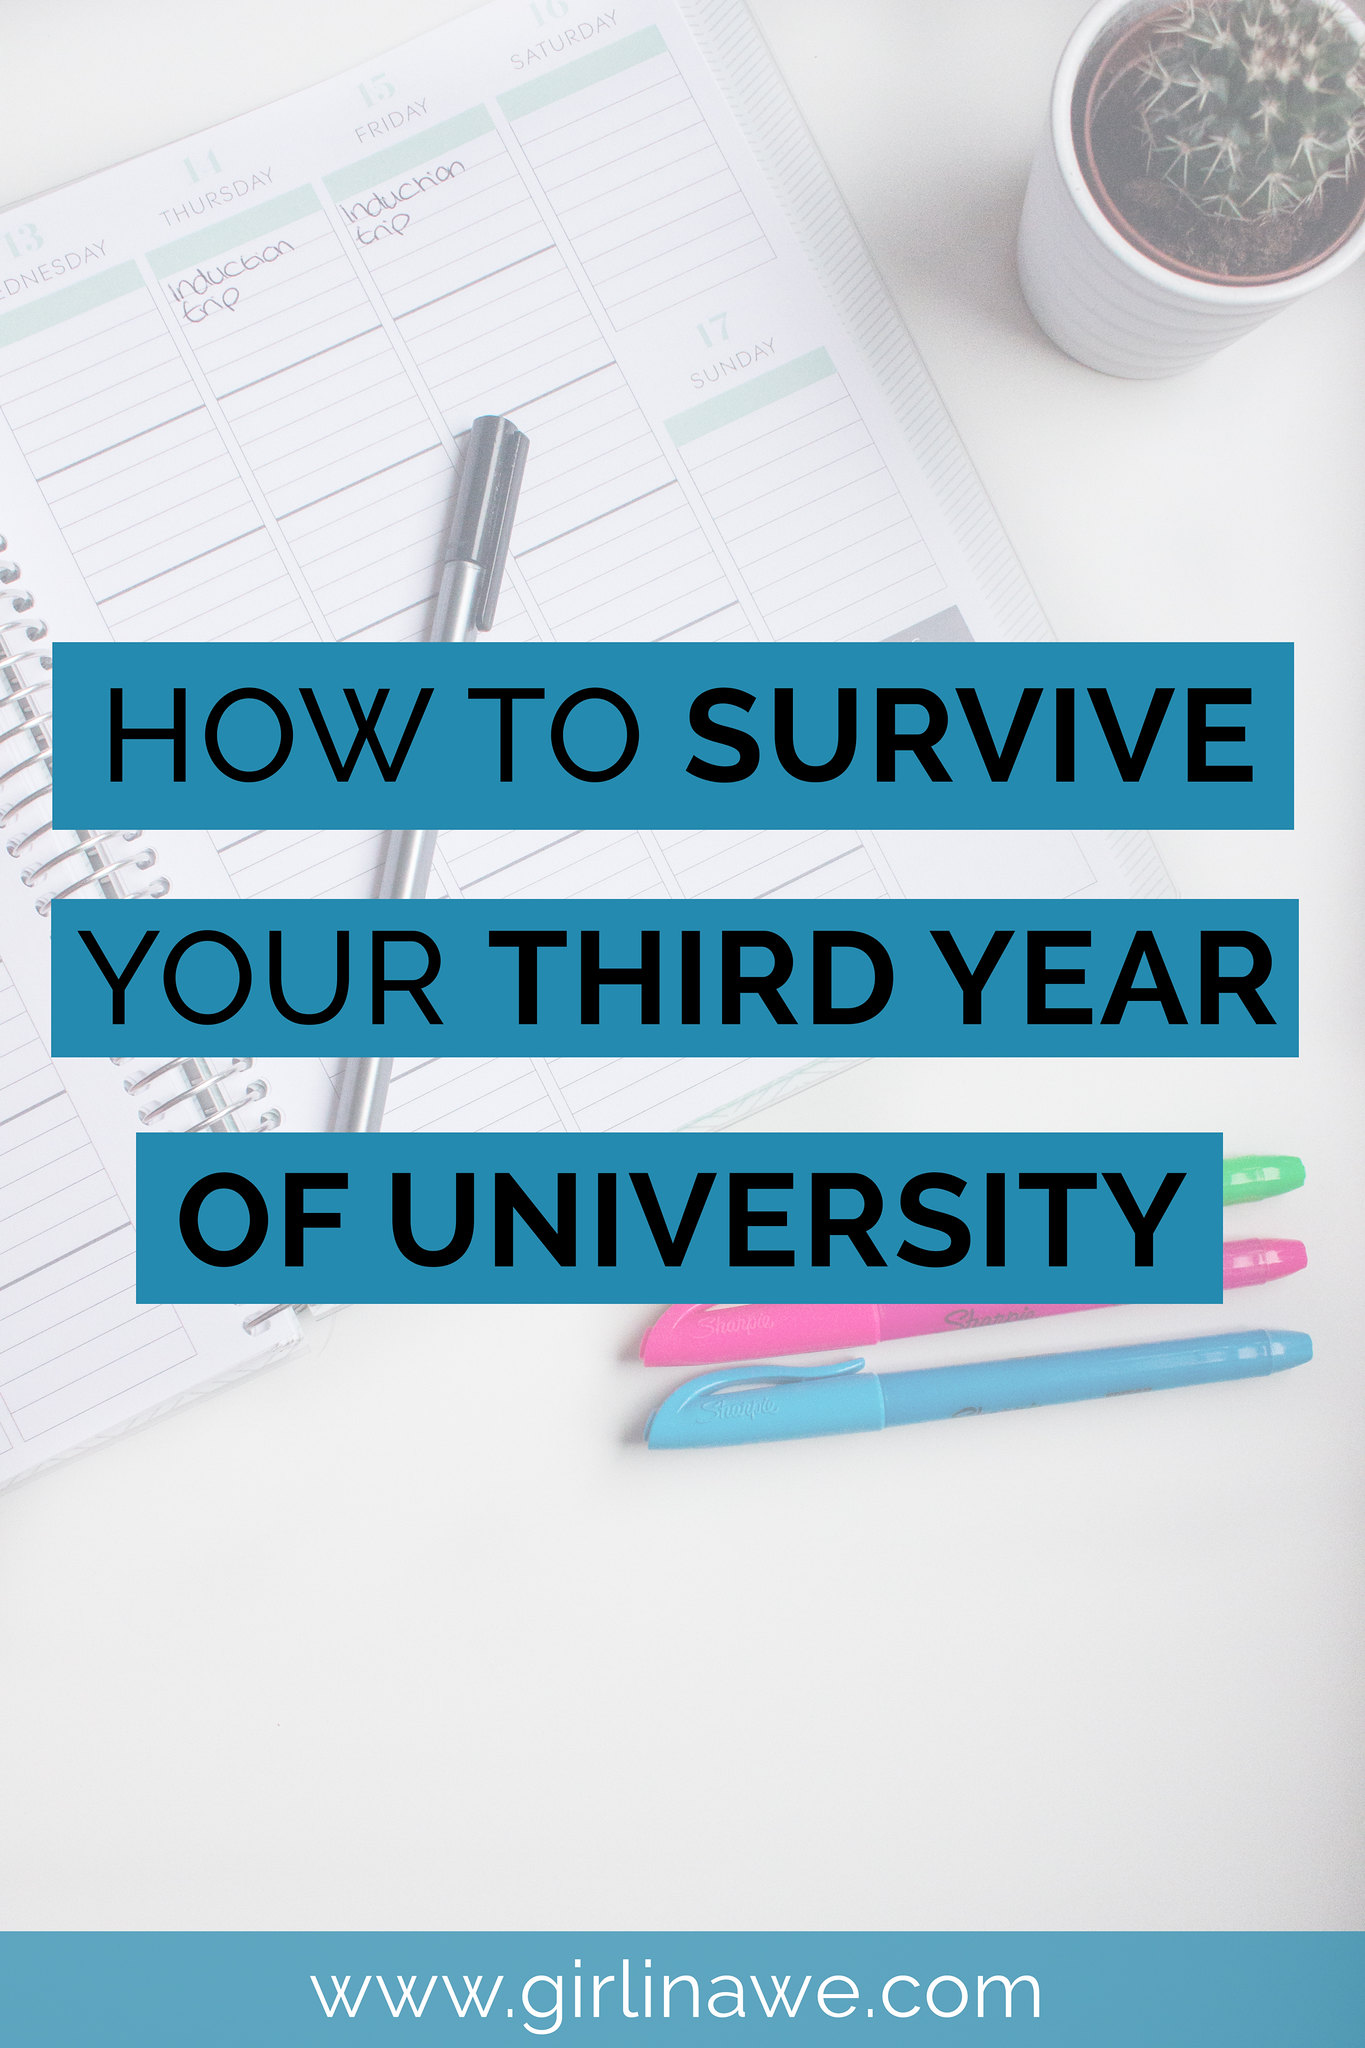 How to survive your third year of university - organisation tips